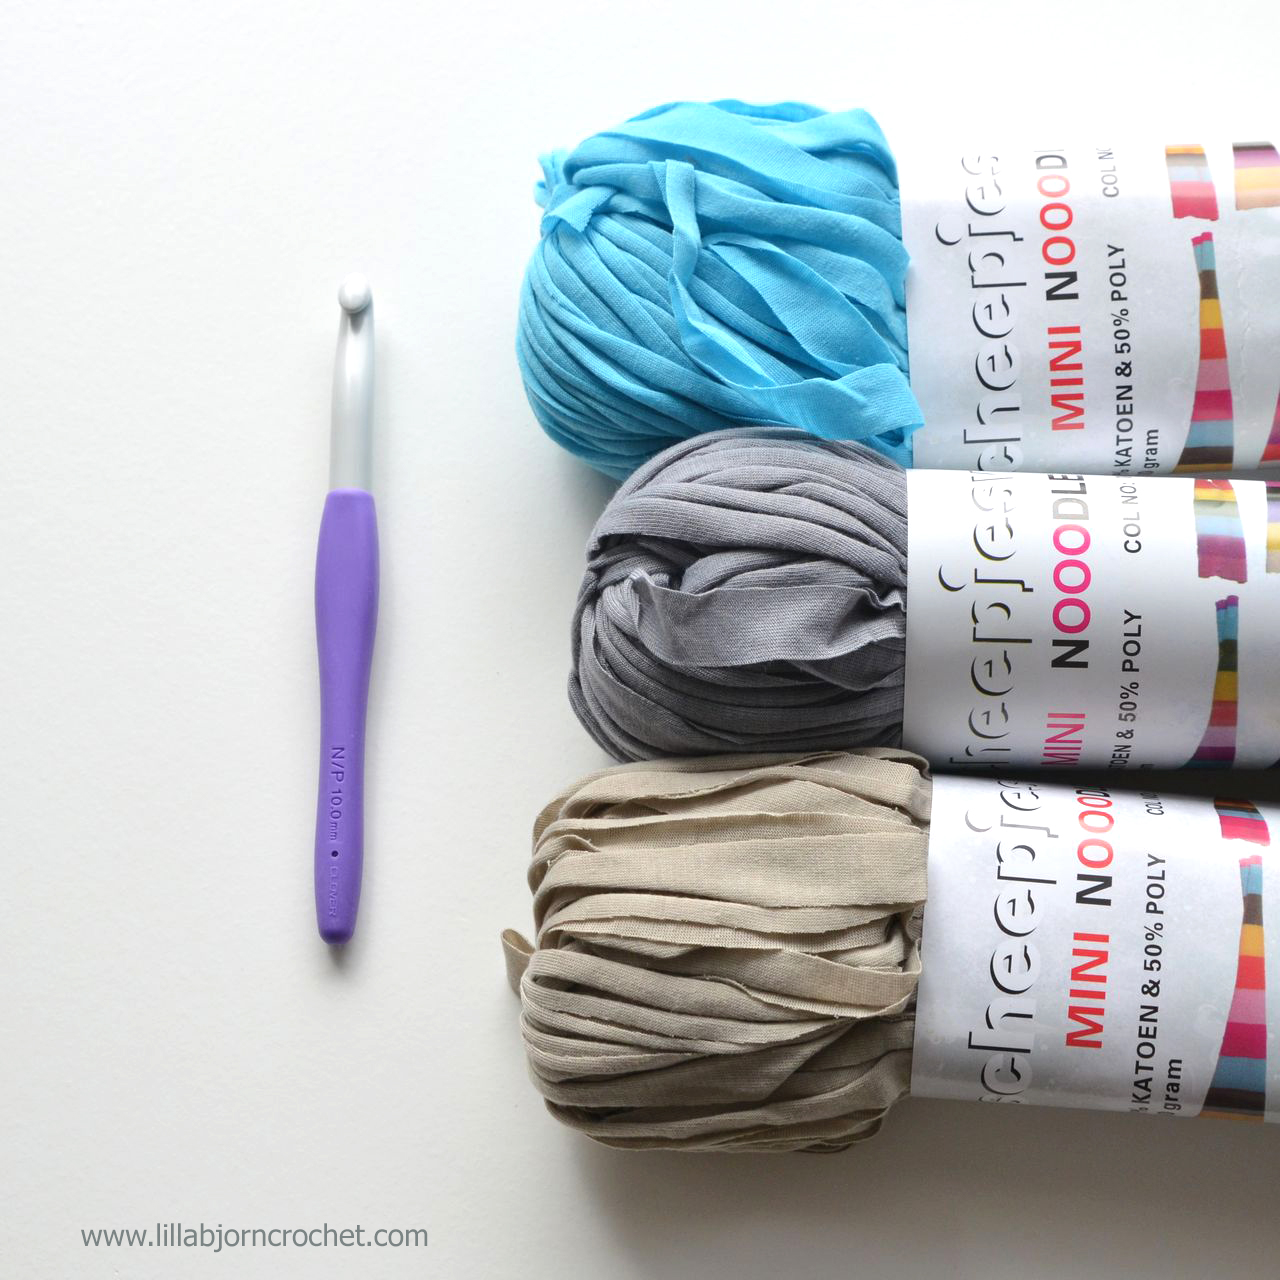 Mini Nooodle yarn by Scheepjes is a mini version of a regular T-shirt yarn. Review by Lilla Bjorn Crochet